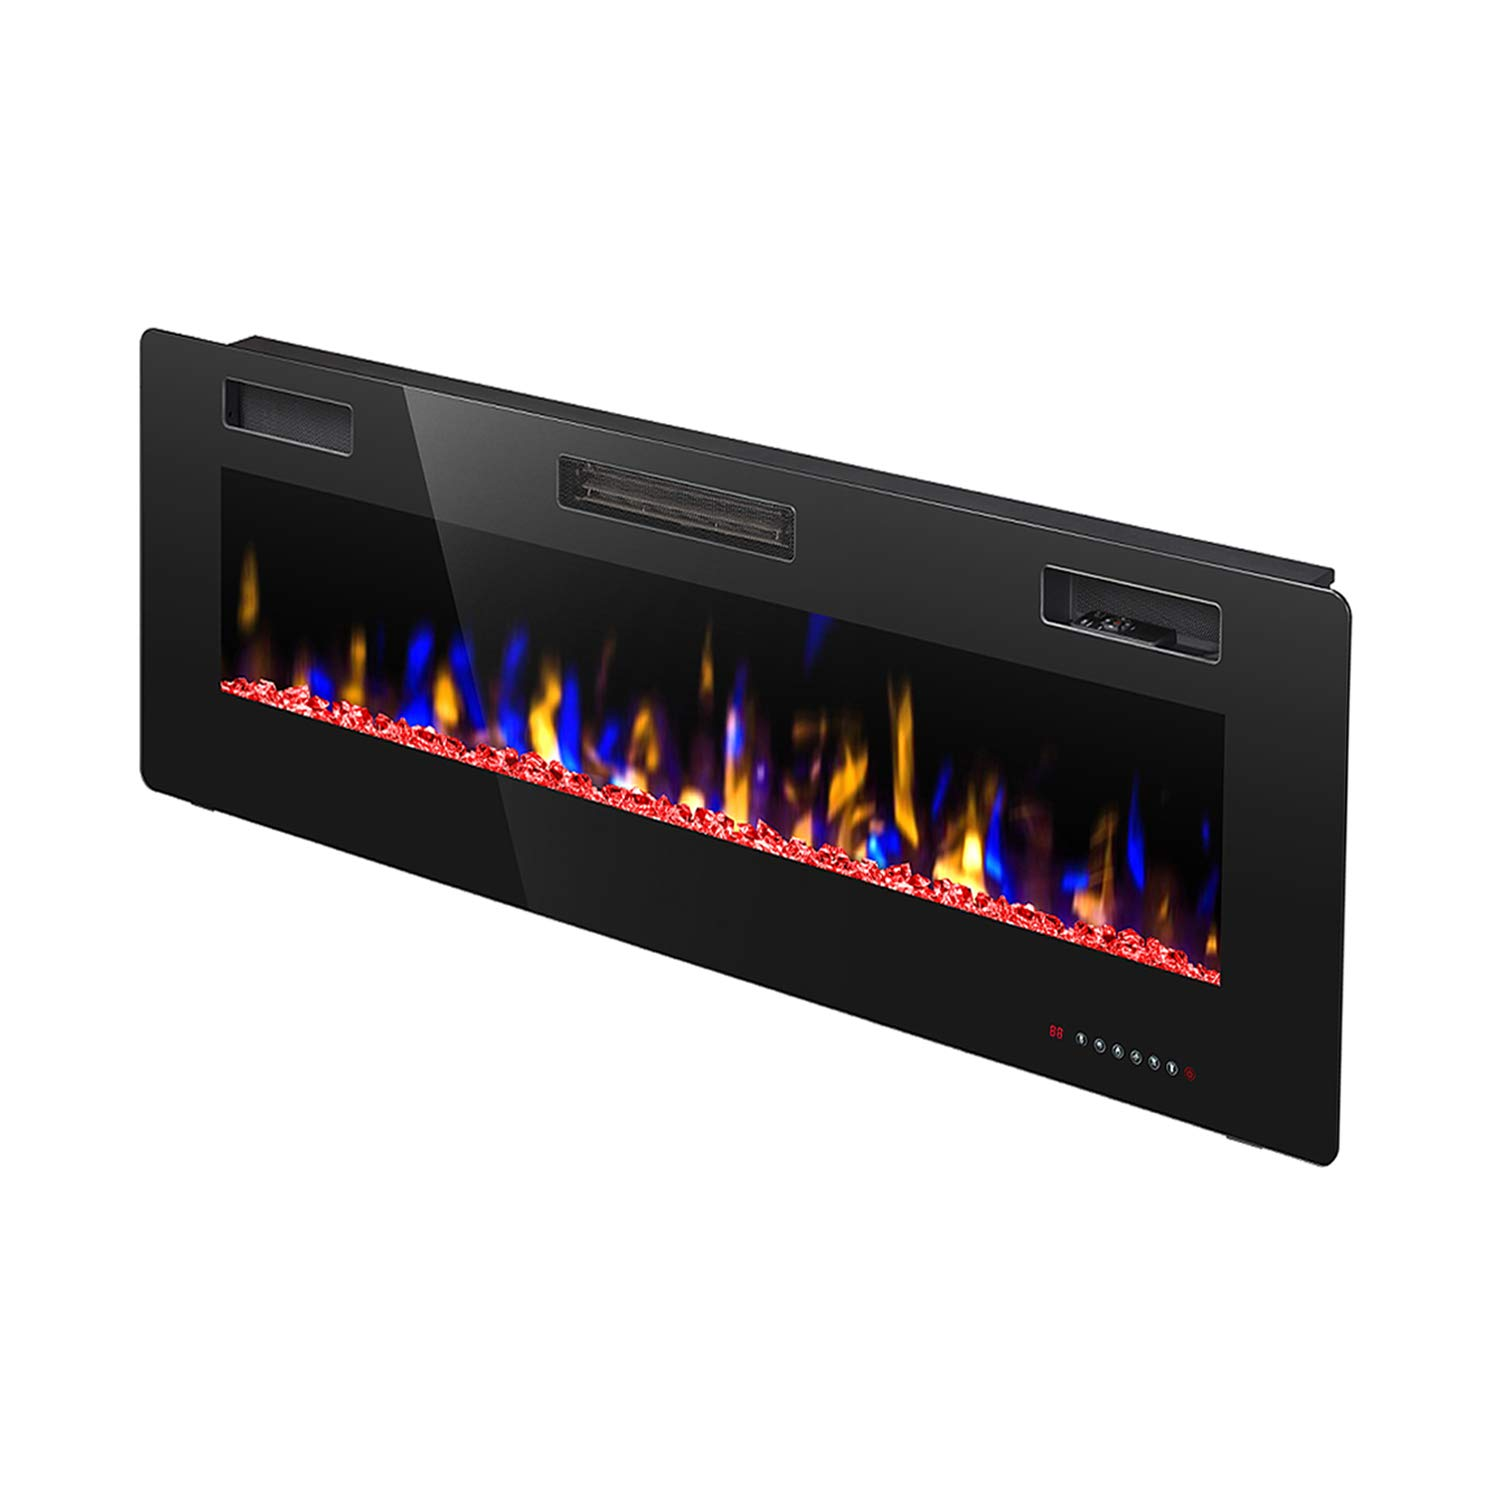 R.W.FLAME 42 Electric Fireplace, Fully Recessed Wall Mounted and in-Wall Fireplace Heater, Remote Control with Timer, Touch Screen, Adjustable Flame Colors and Speed, 750 1500W